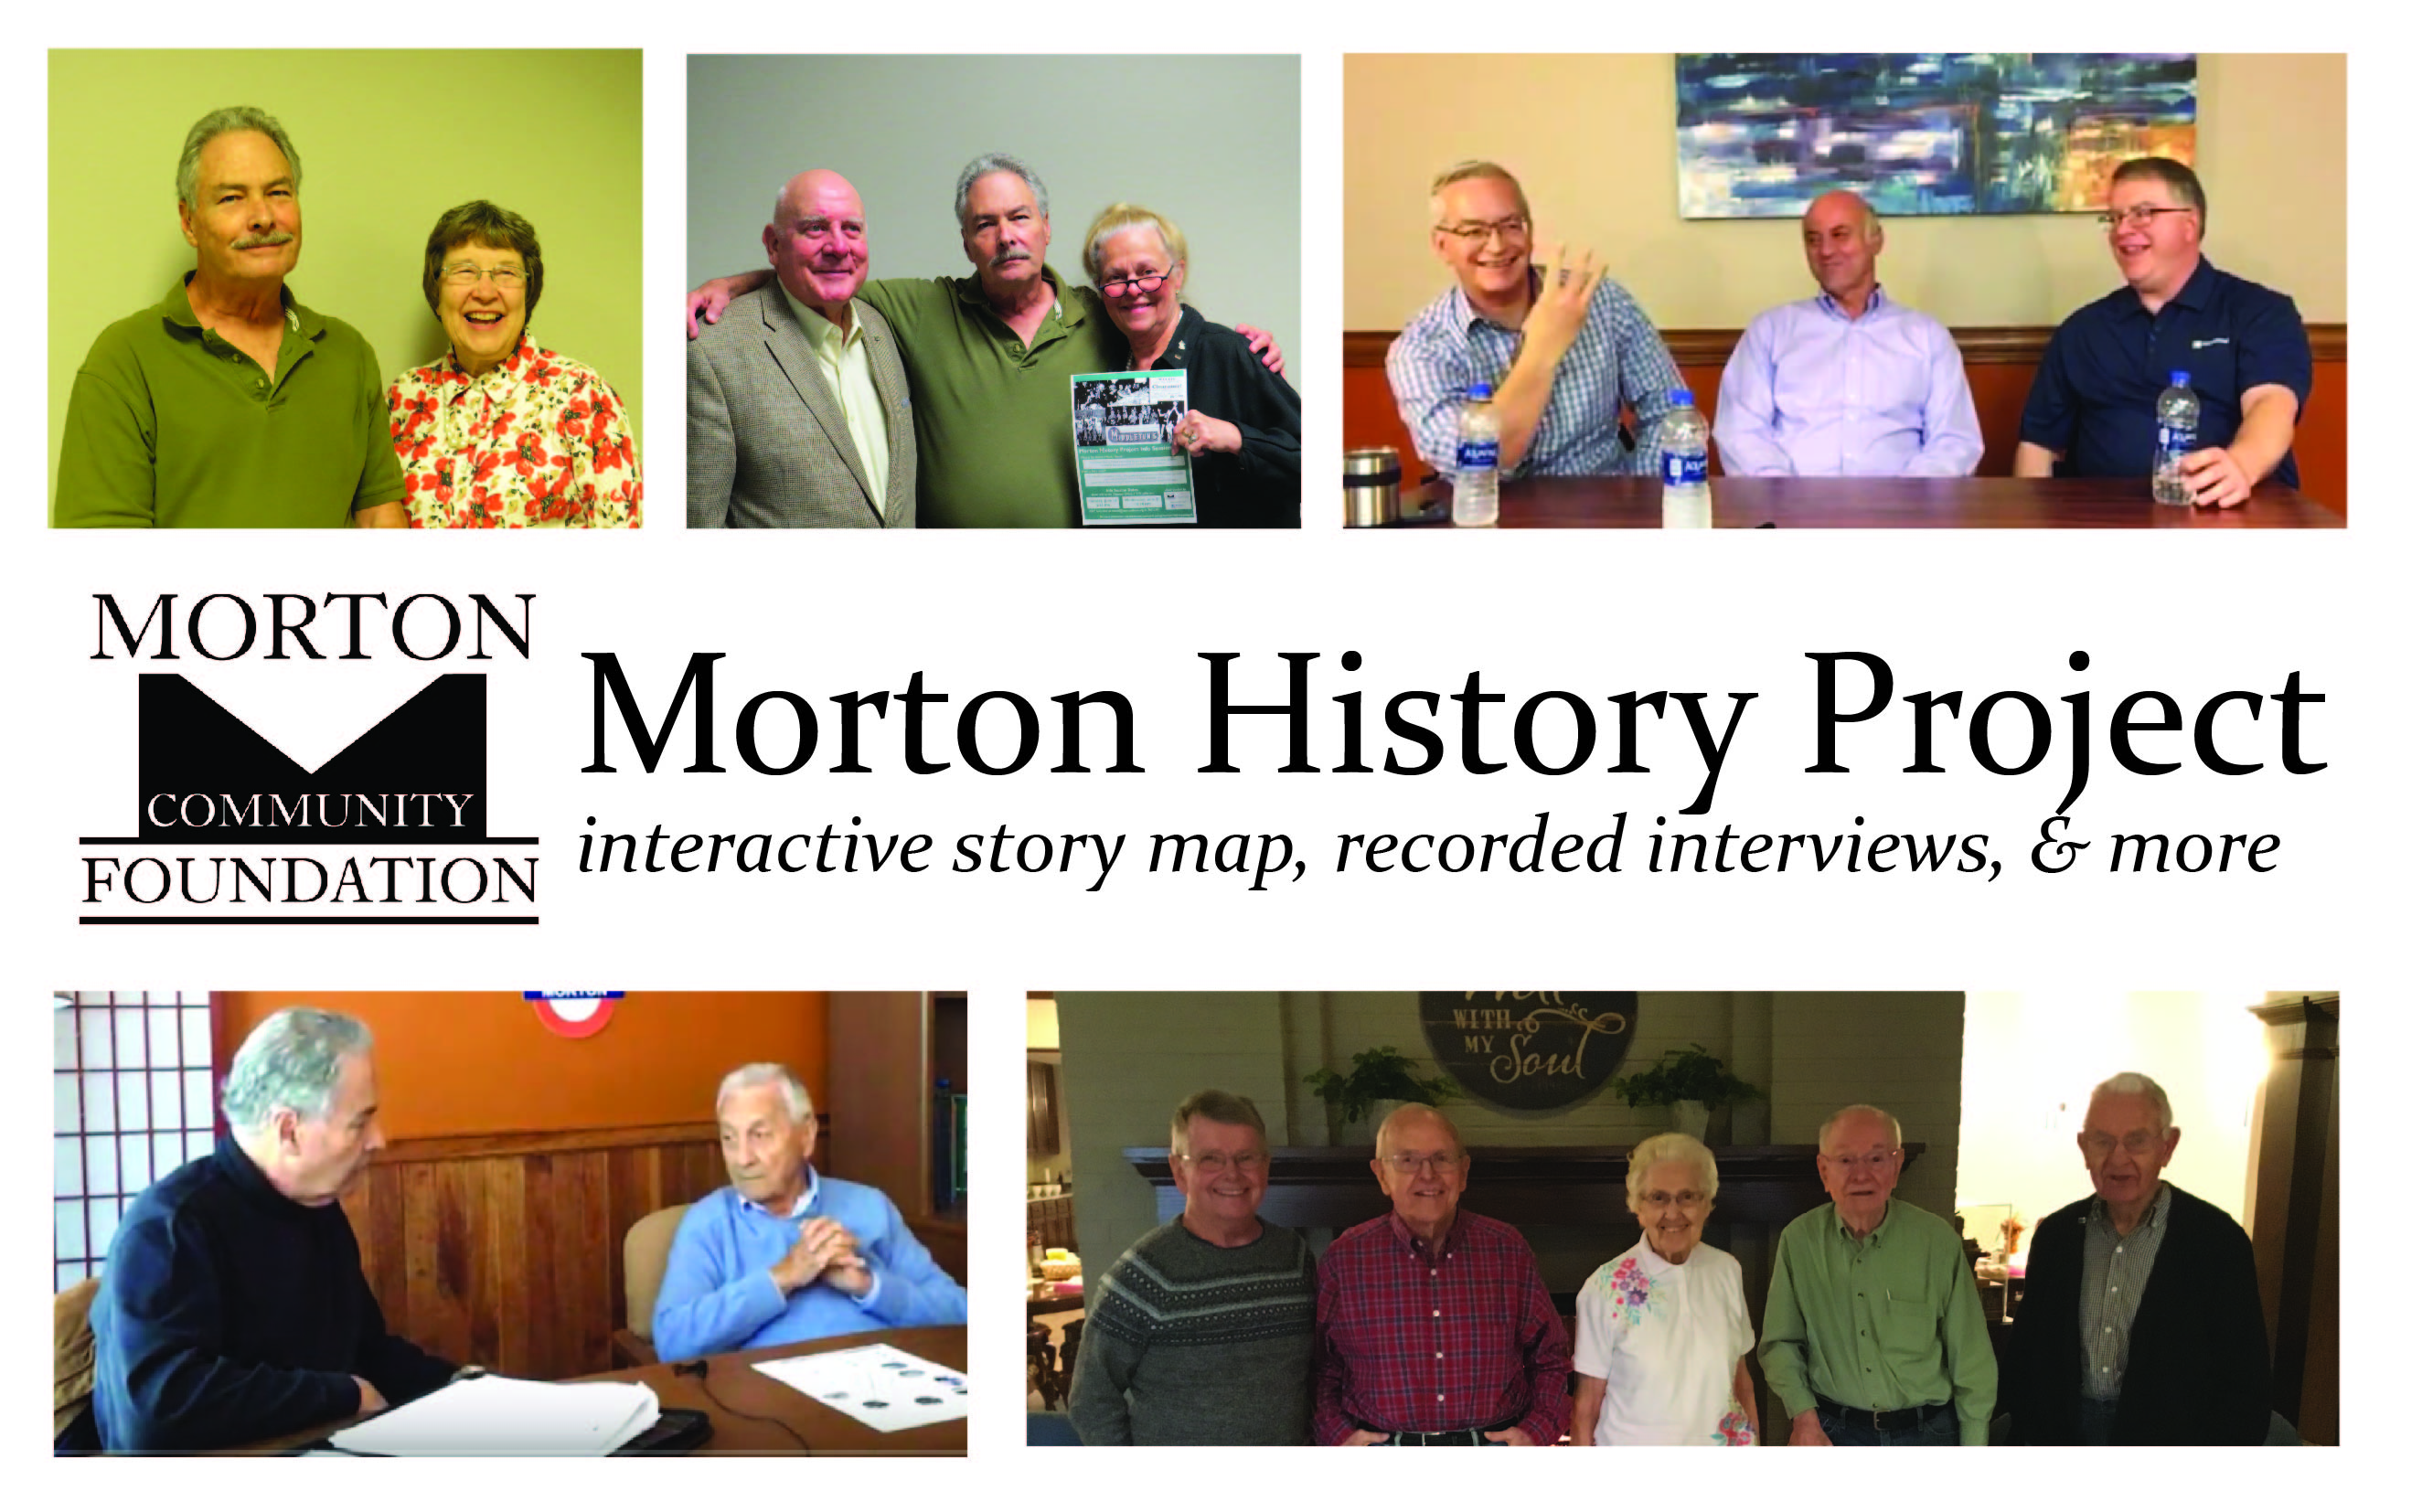 Morton-History-Project-Banner.jpg